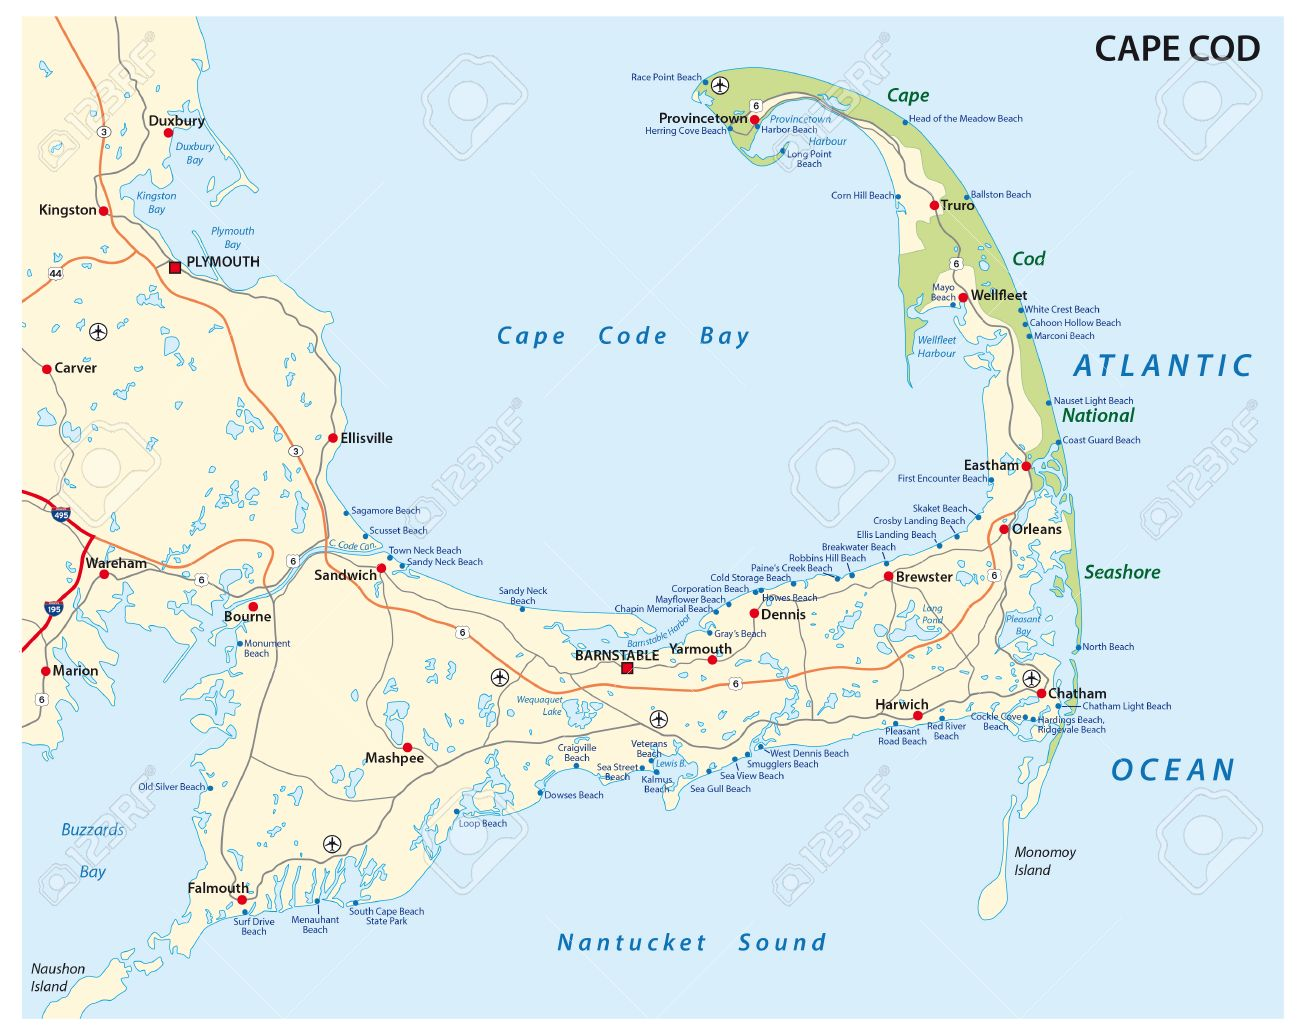 cape cod road and beach map Cape Cod Beaches Map on